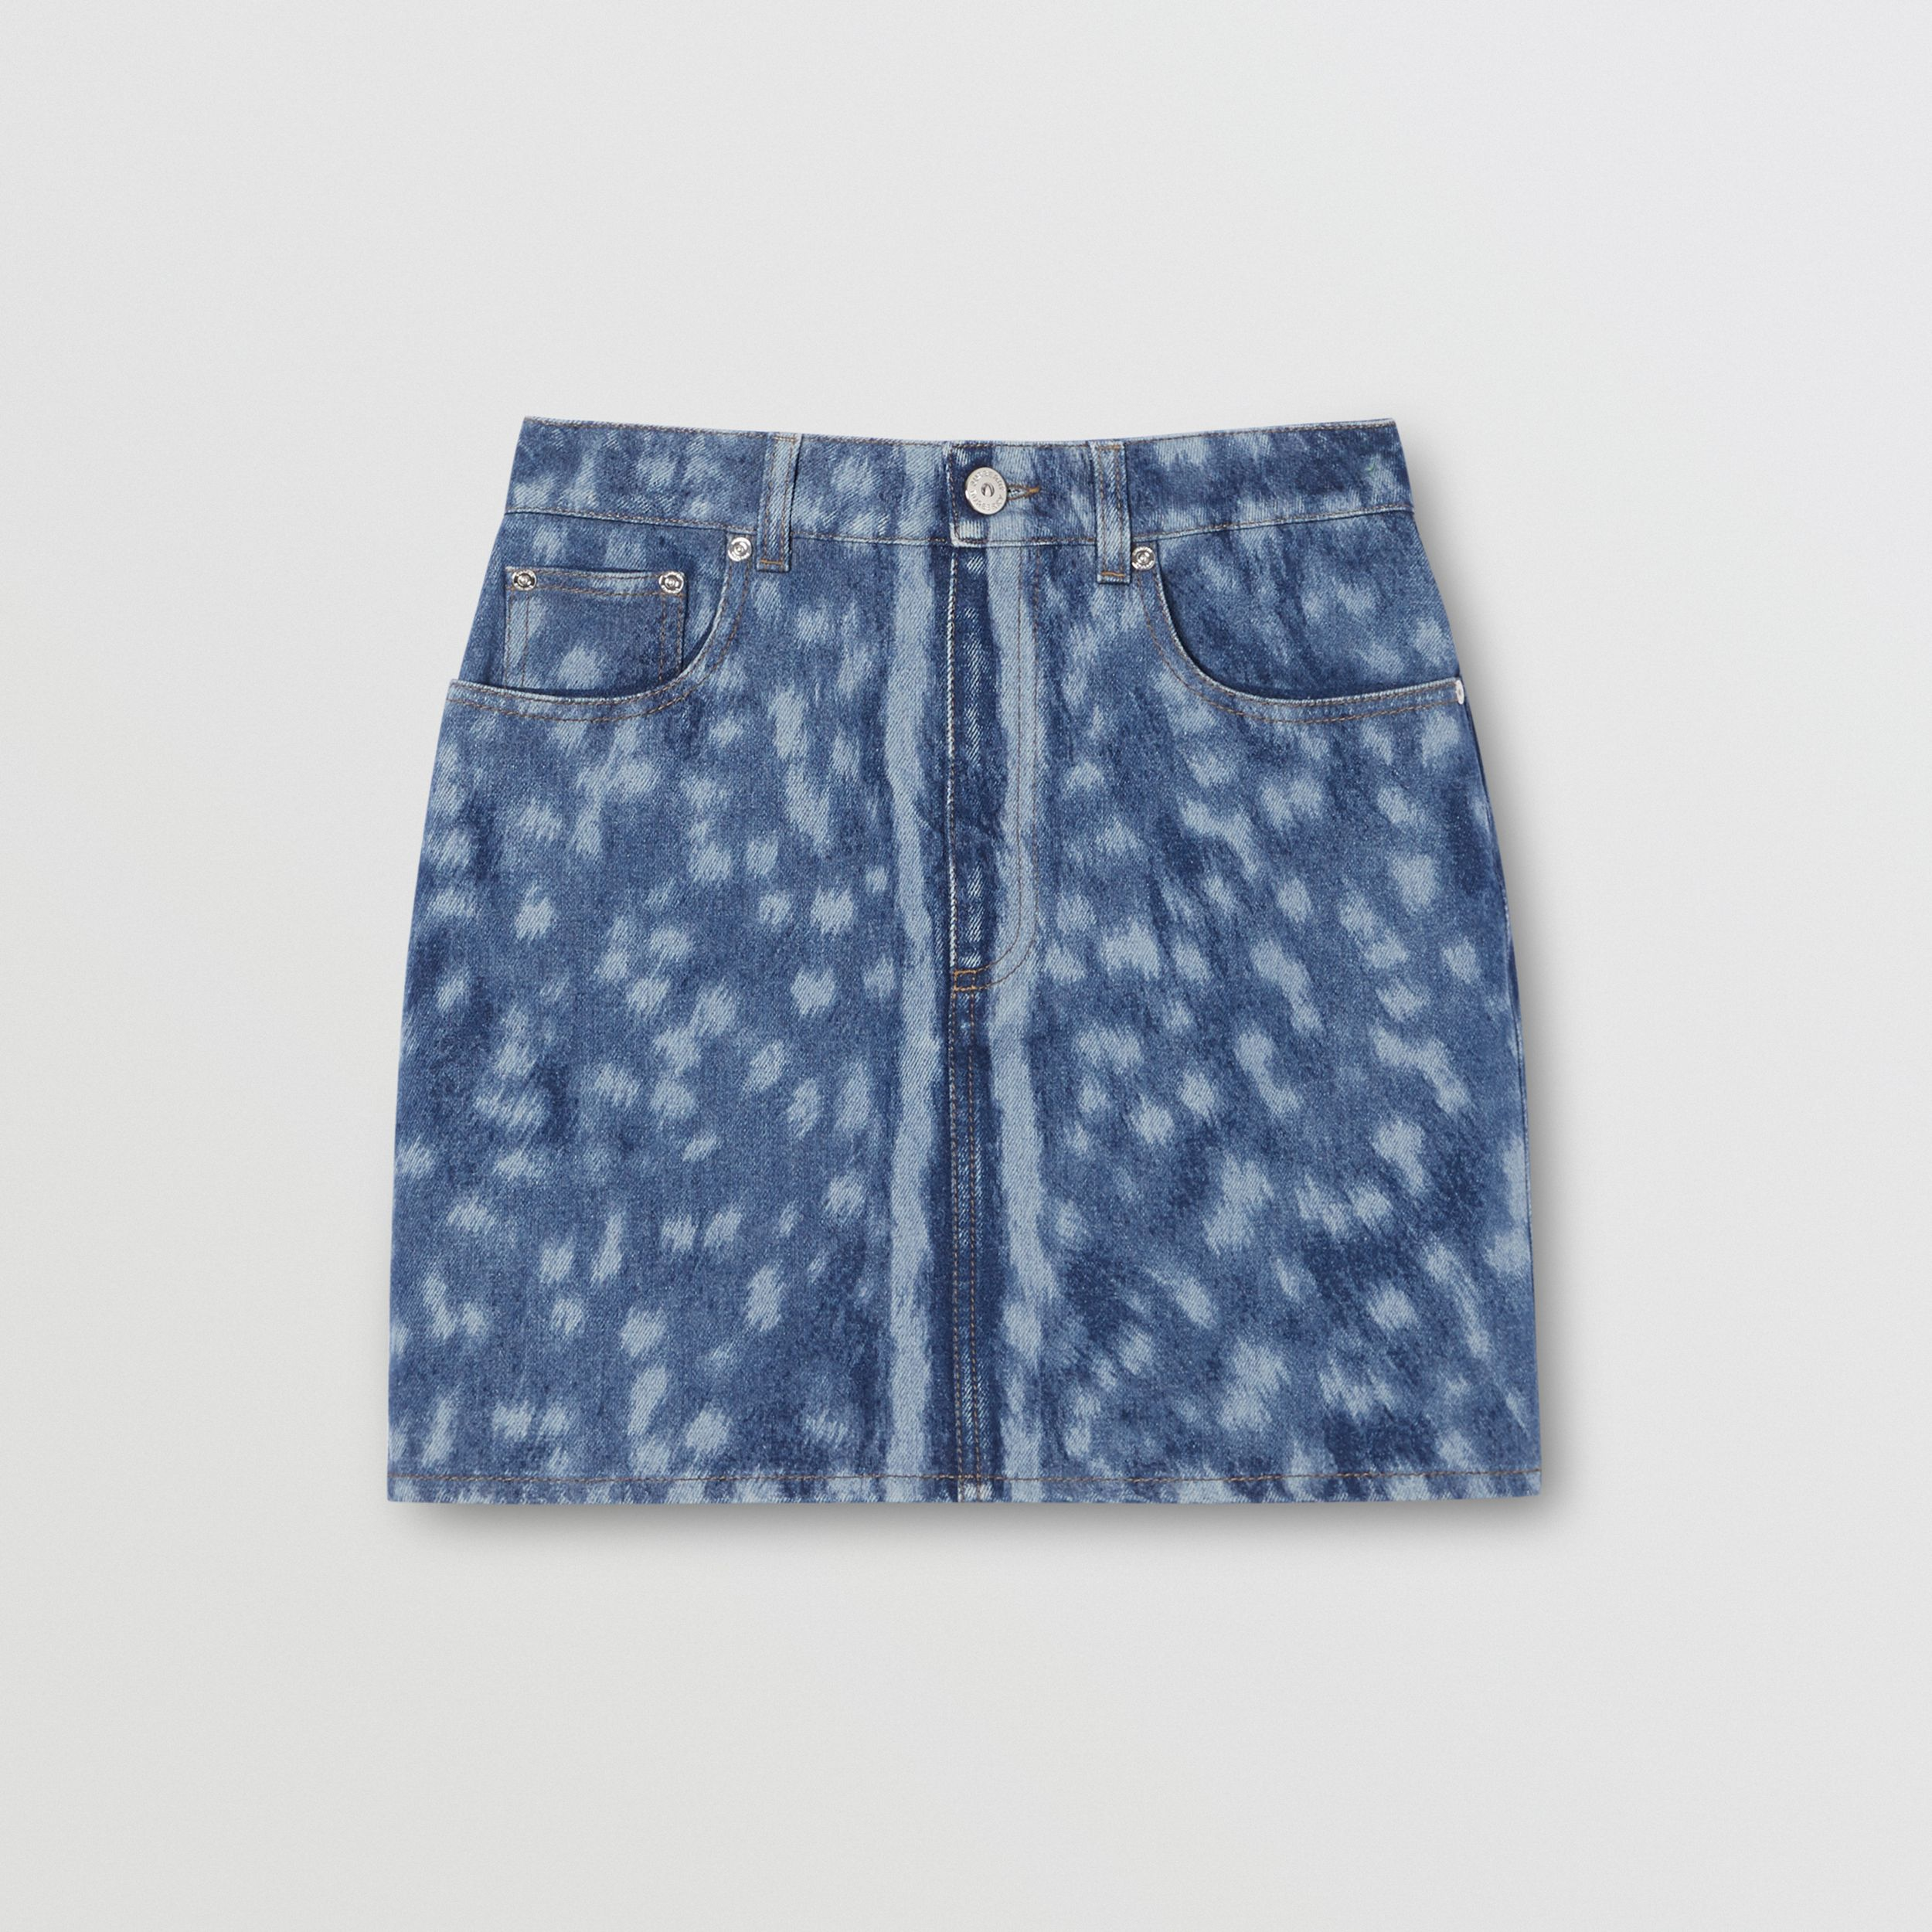 Deer Print Denim Mini Skirt in Mid Indigo - Women | Burberry Singapore - 4